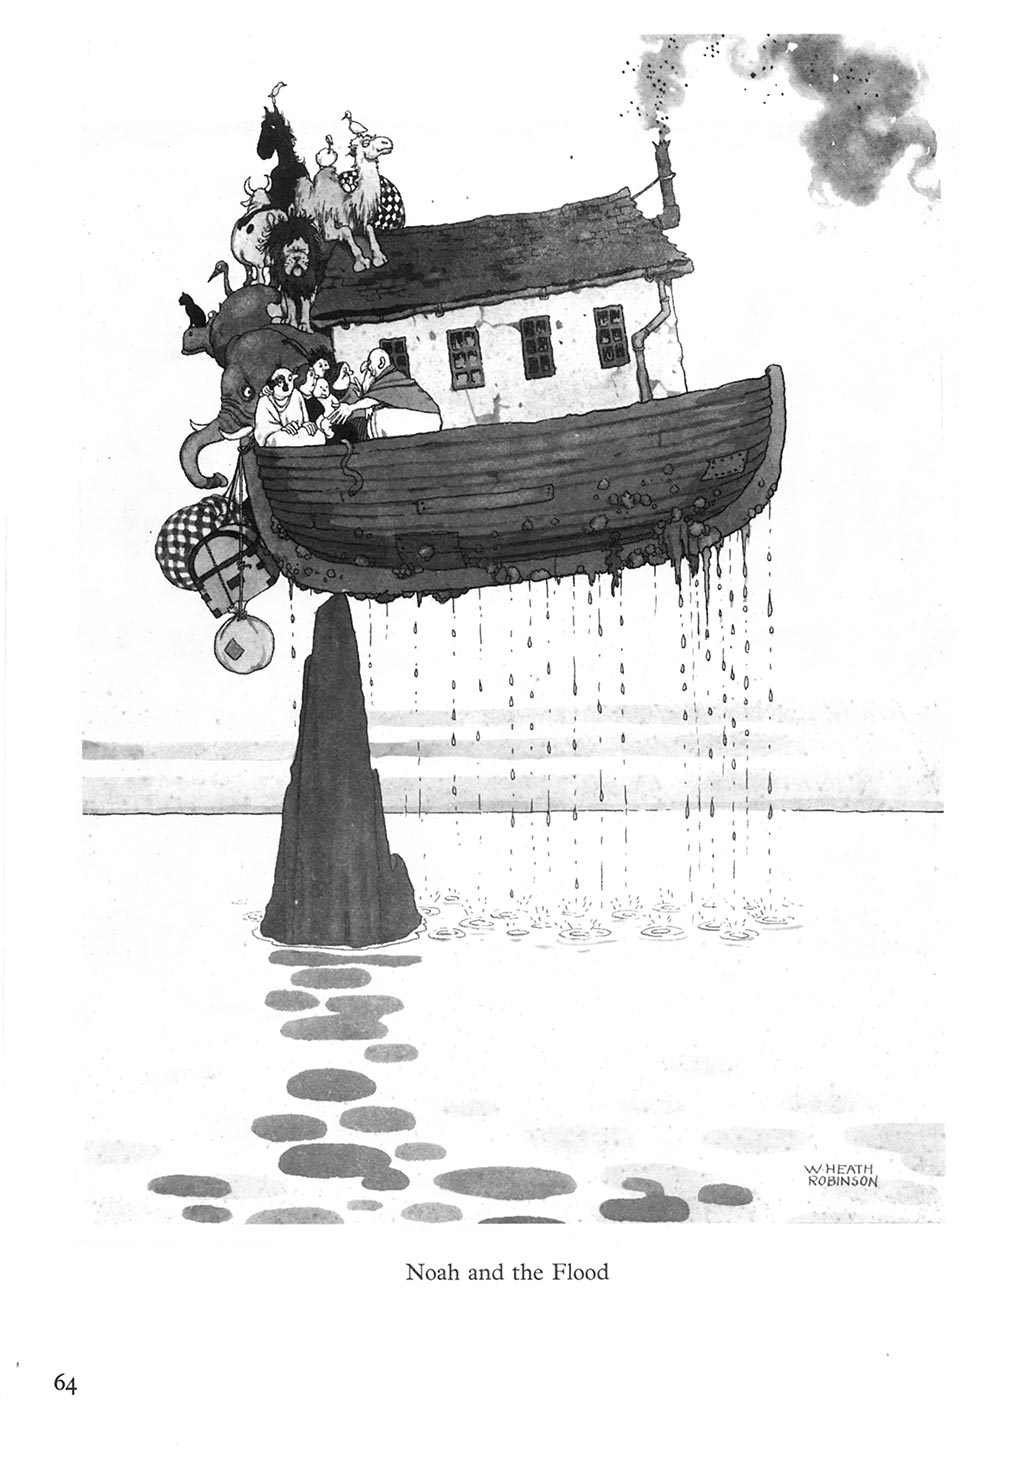 william_heath_robinson_inventions_-_page_064